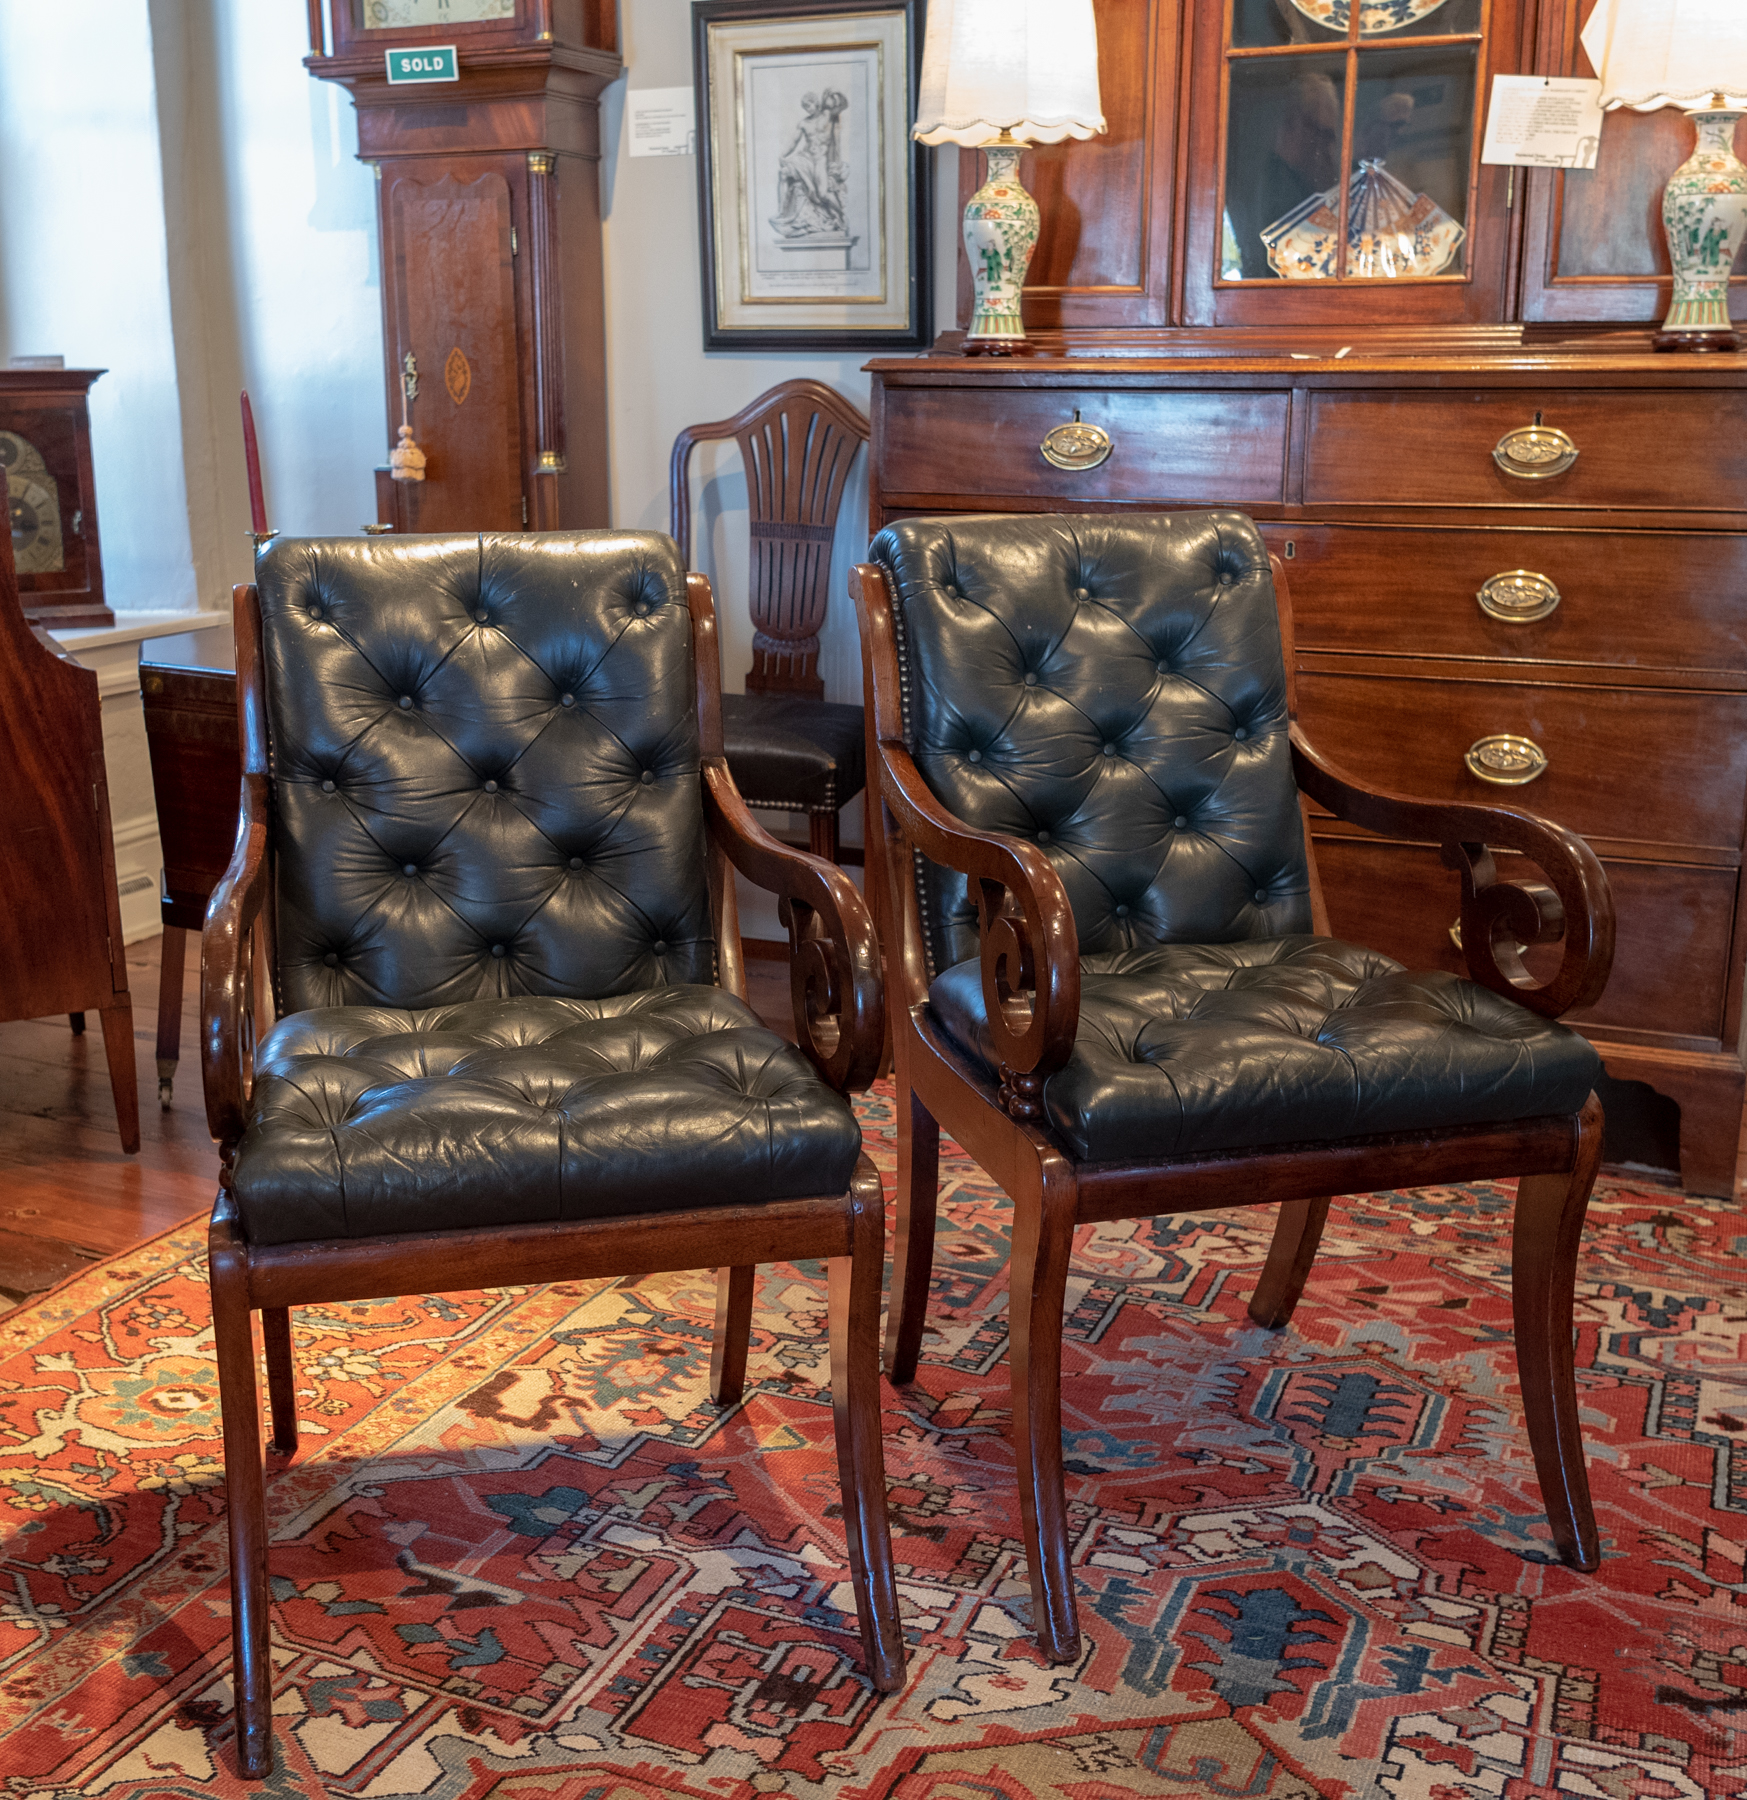 A Matched Pair Of Classical Mahogany And Leather Armchairs.